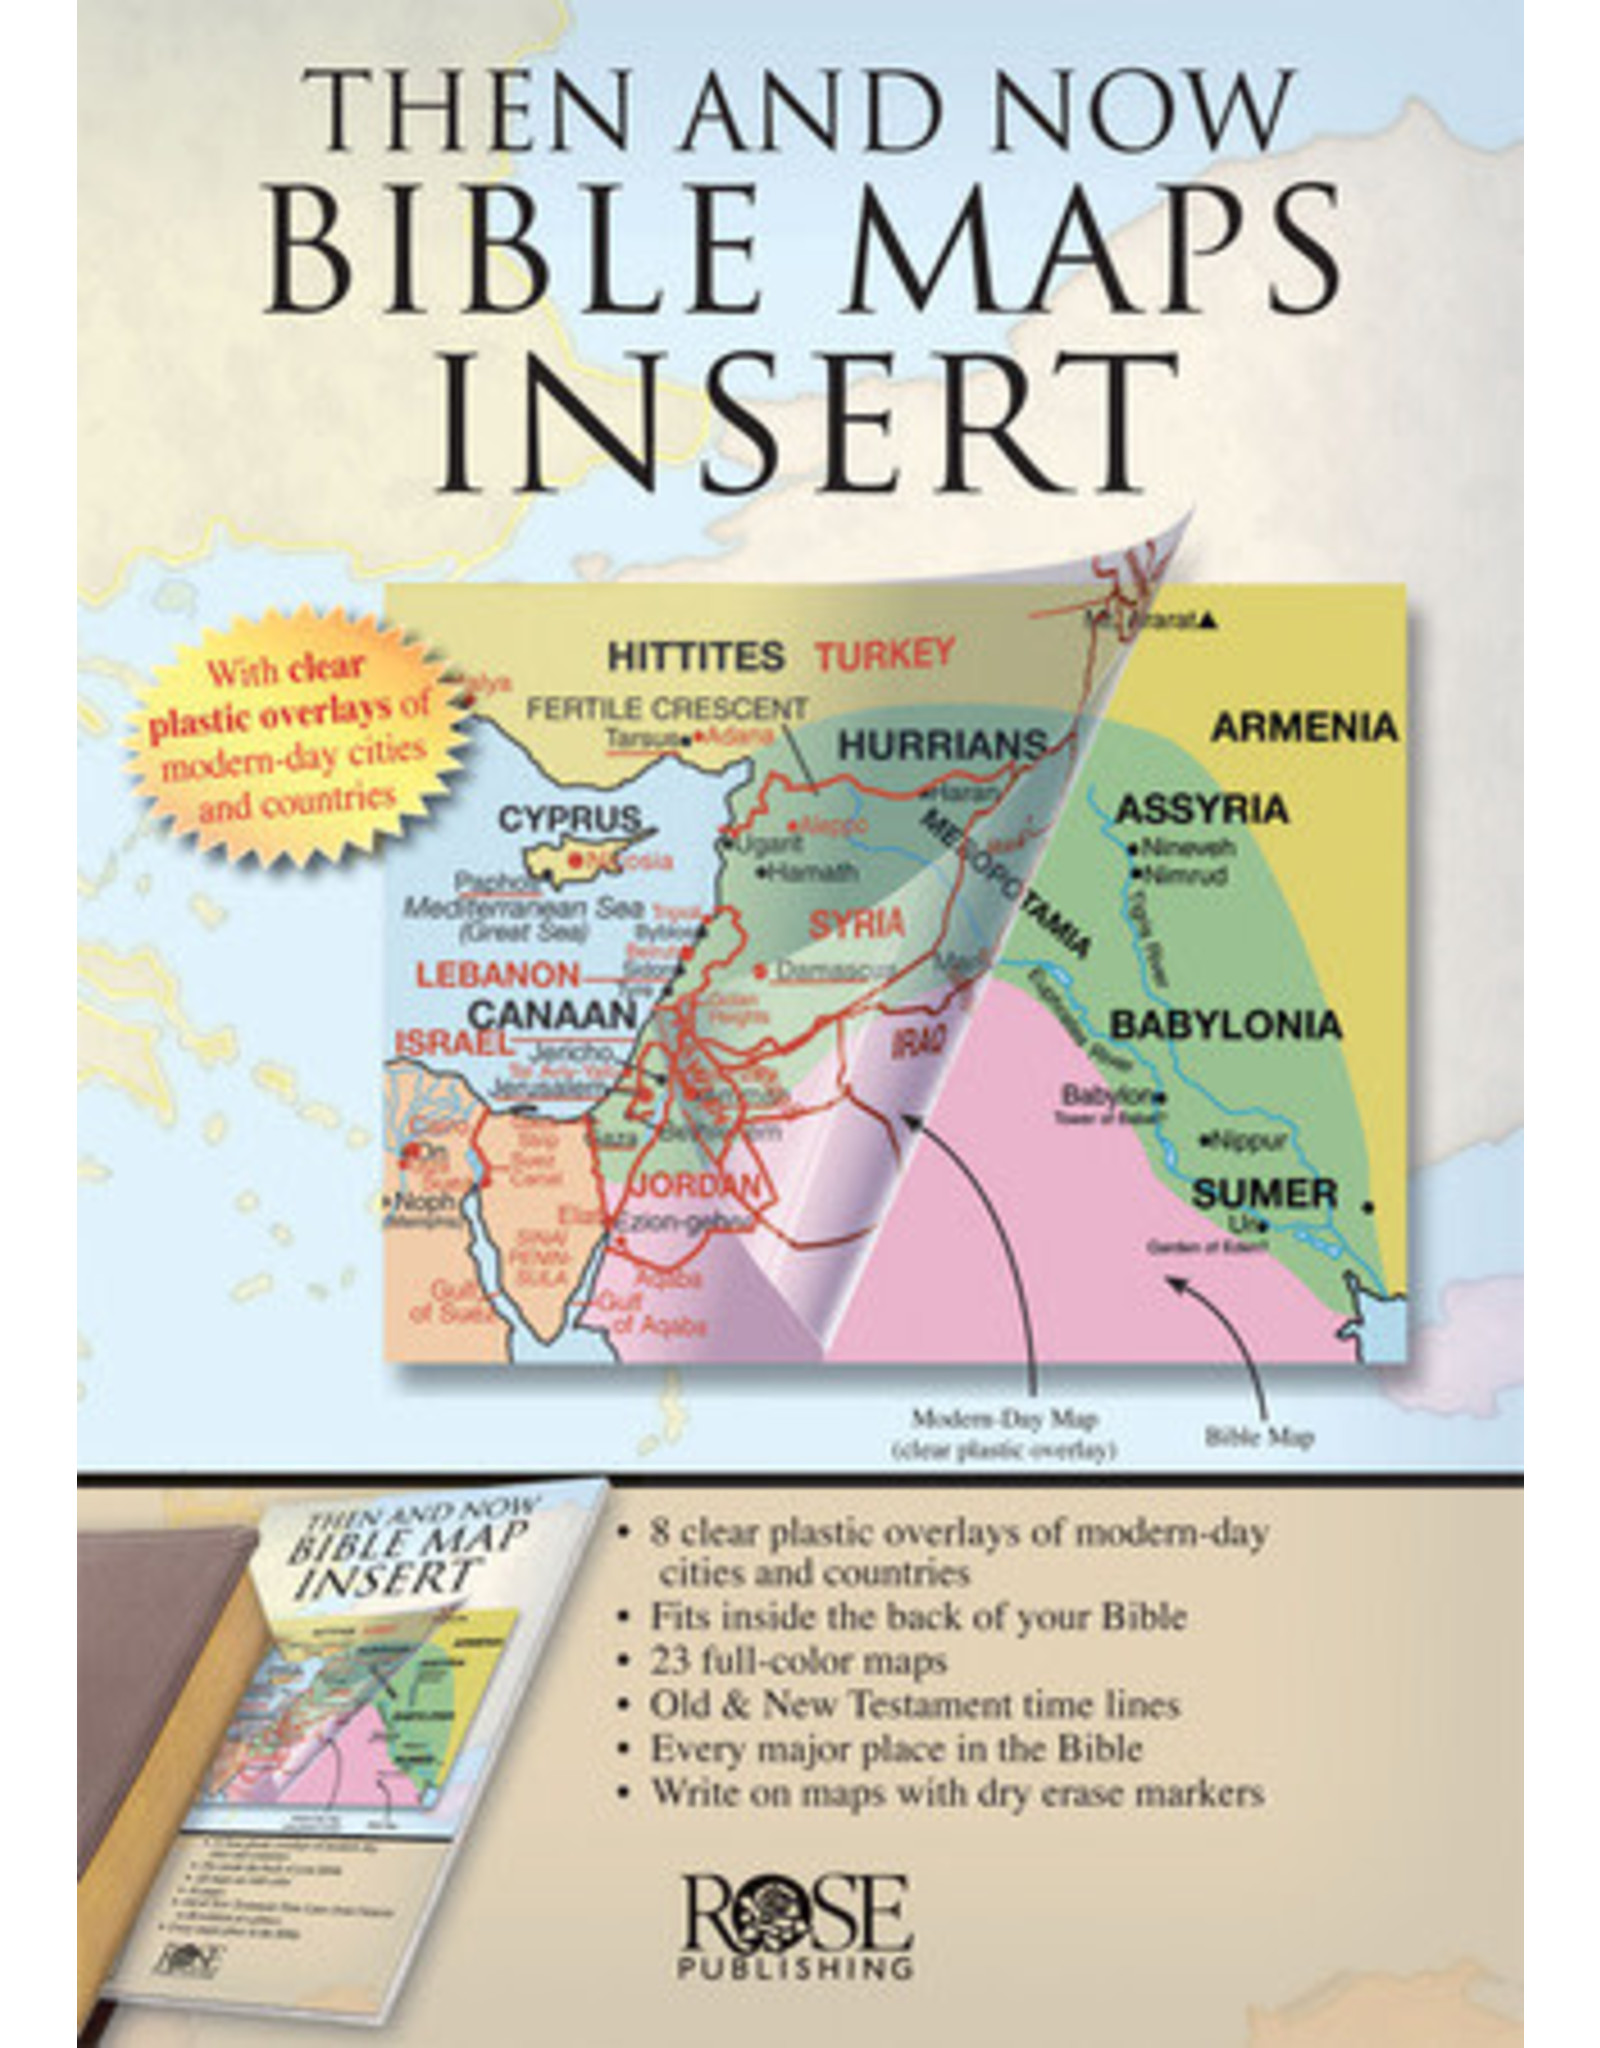 Rose Then and Now Bible Maps Insert